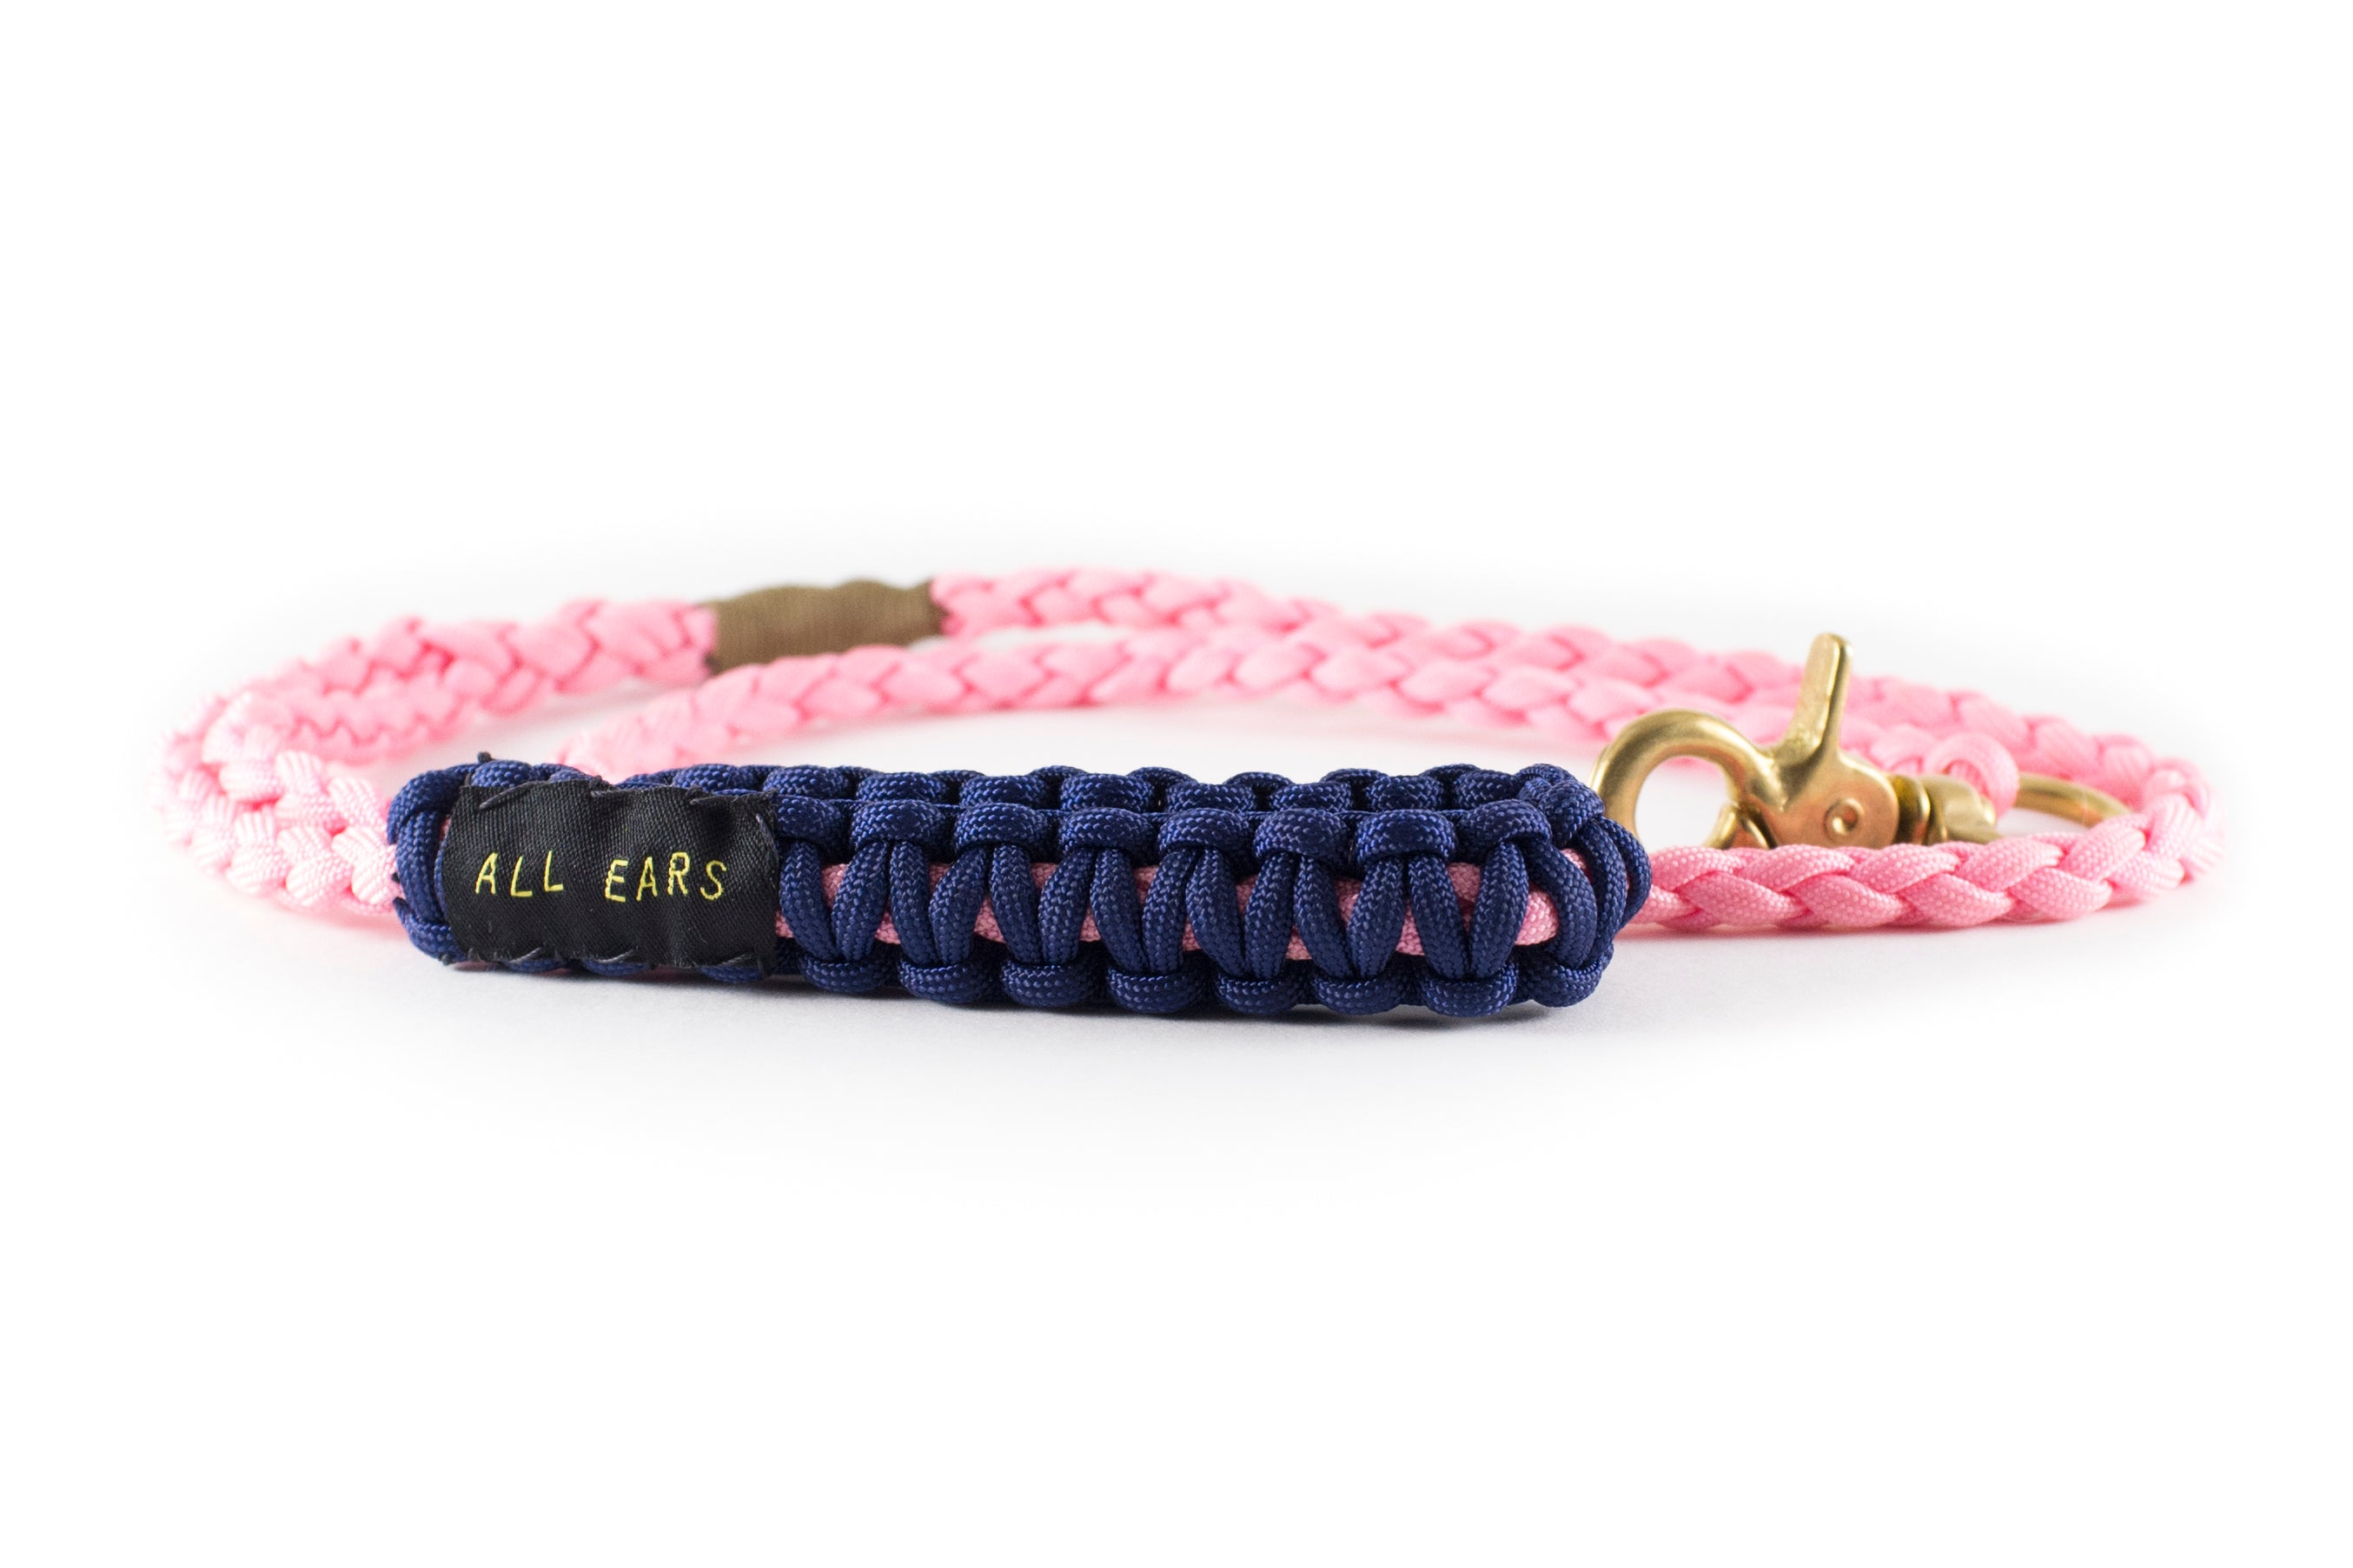 Braided Paracord 550 Leash - Rose Pink